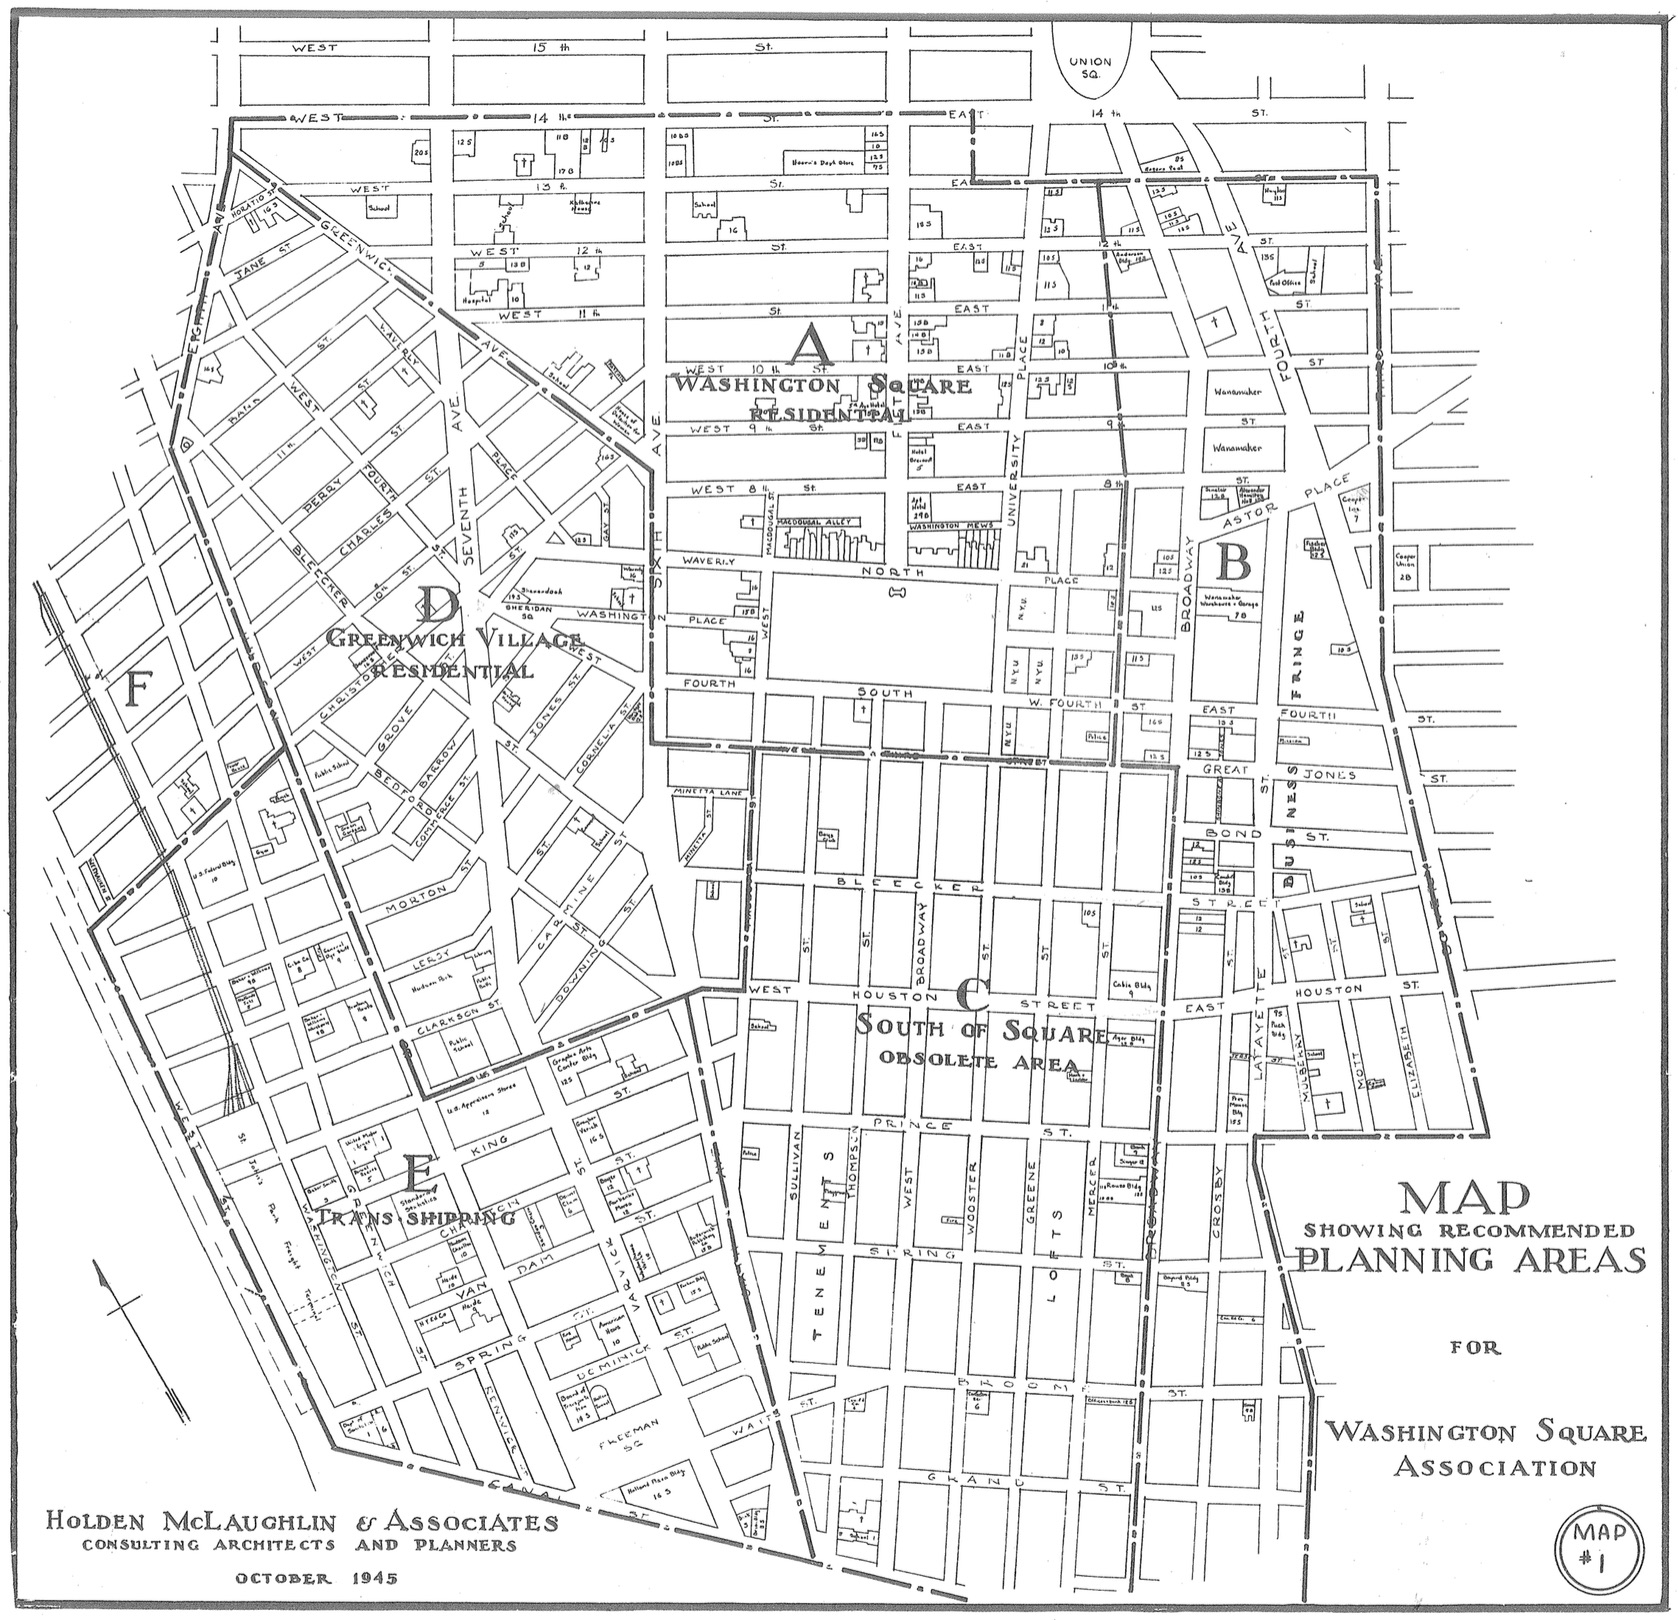 "Urban developers and architects in the 1945 Holden-McLaughlin Plan labeled Greene Street and the SoHo vicinity as an ""Obsolete Area."" Their report claims: ""None of the present buildings in the block are really worth preserving. This is a clear case calling for complete demolition and complete replacement."" Holden-McLaughlin Plan, 1945. Found in Schwartz, Joel. The New York Approach: Robert Moses, Urban Liberals, and Redevelopment of the Inner City. Ohio State University Press: 1993, 148."